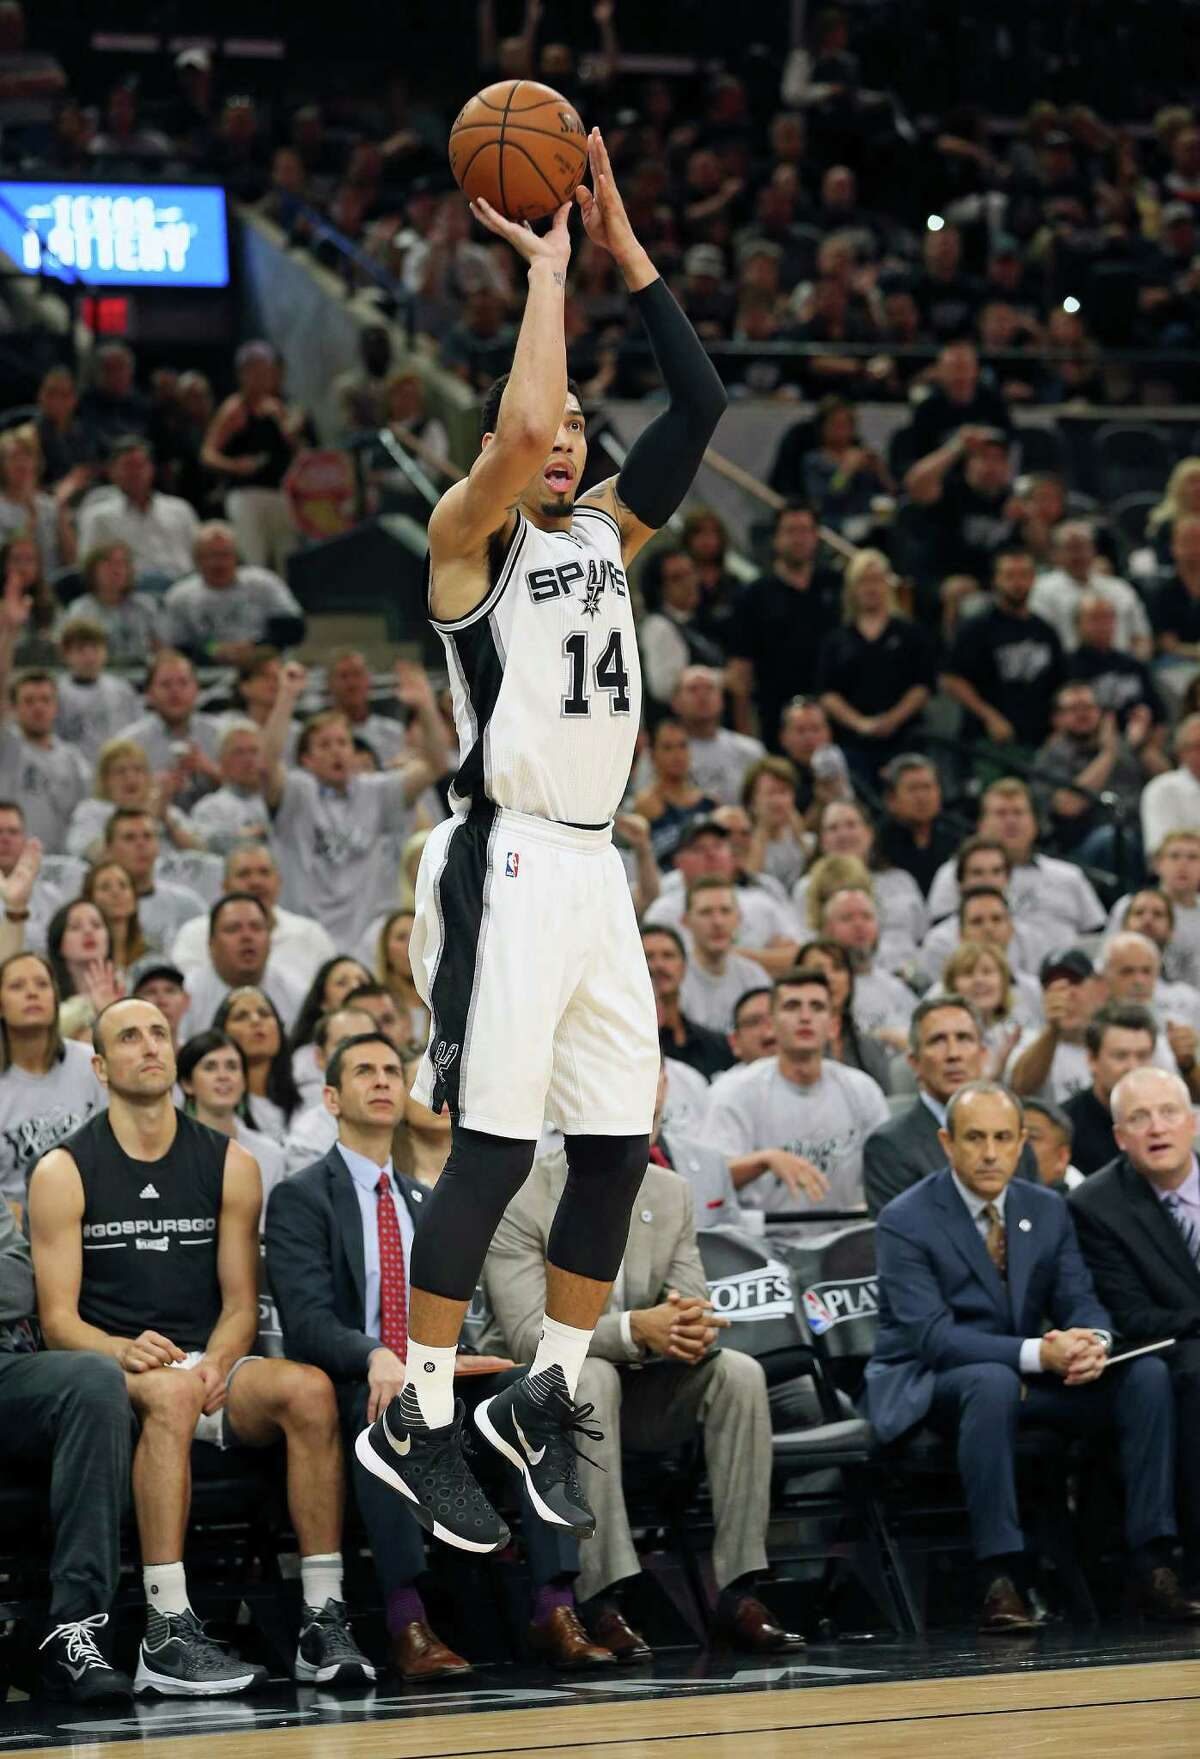 Danny Green gets everyone's attention as he launches a three pointer in the first half as the Spurs host the Thunder in game 1 of second round NBA playoff action at the AT&T Center on April 23, 2016.